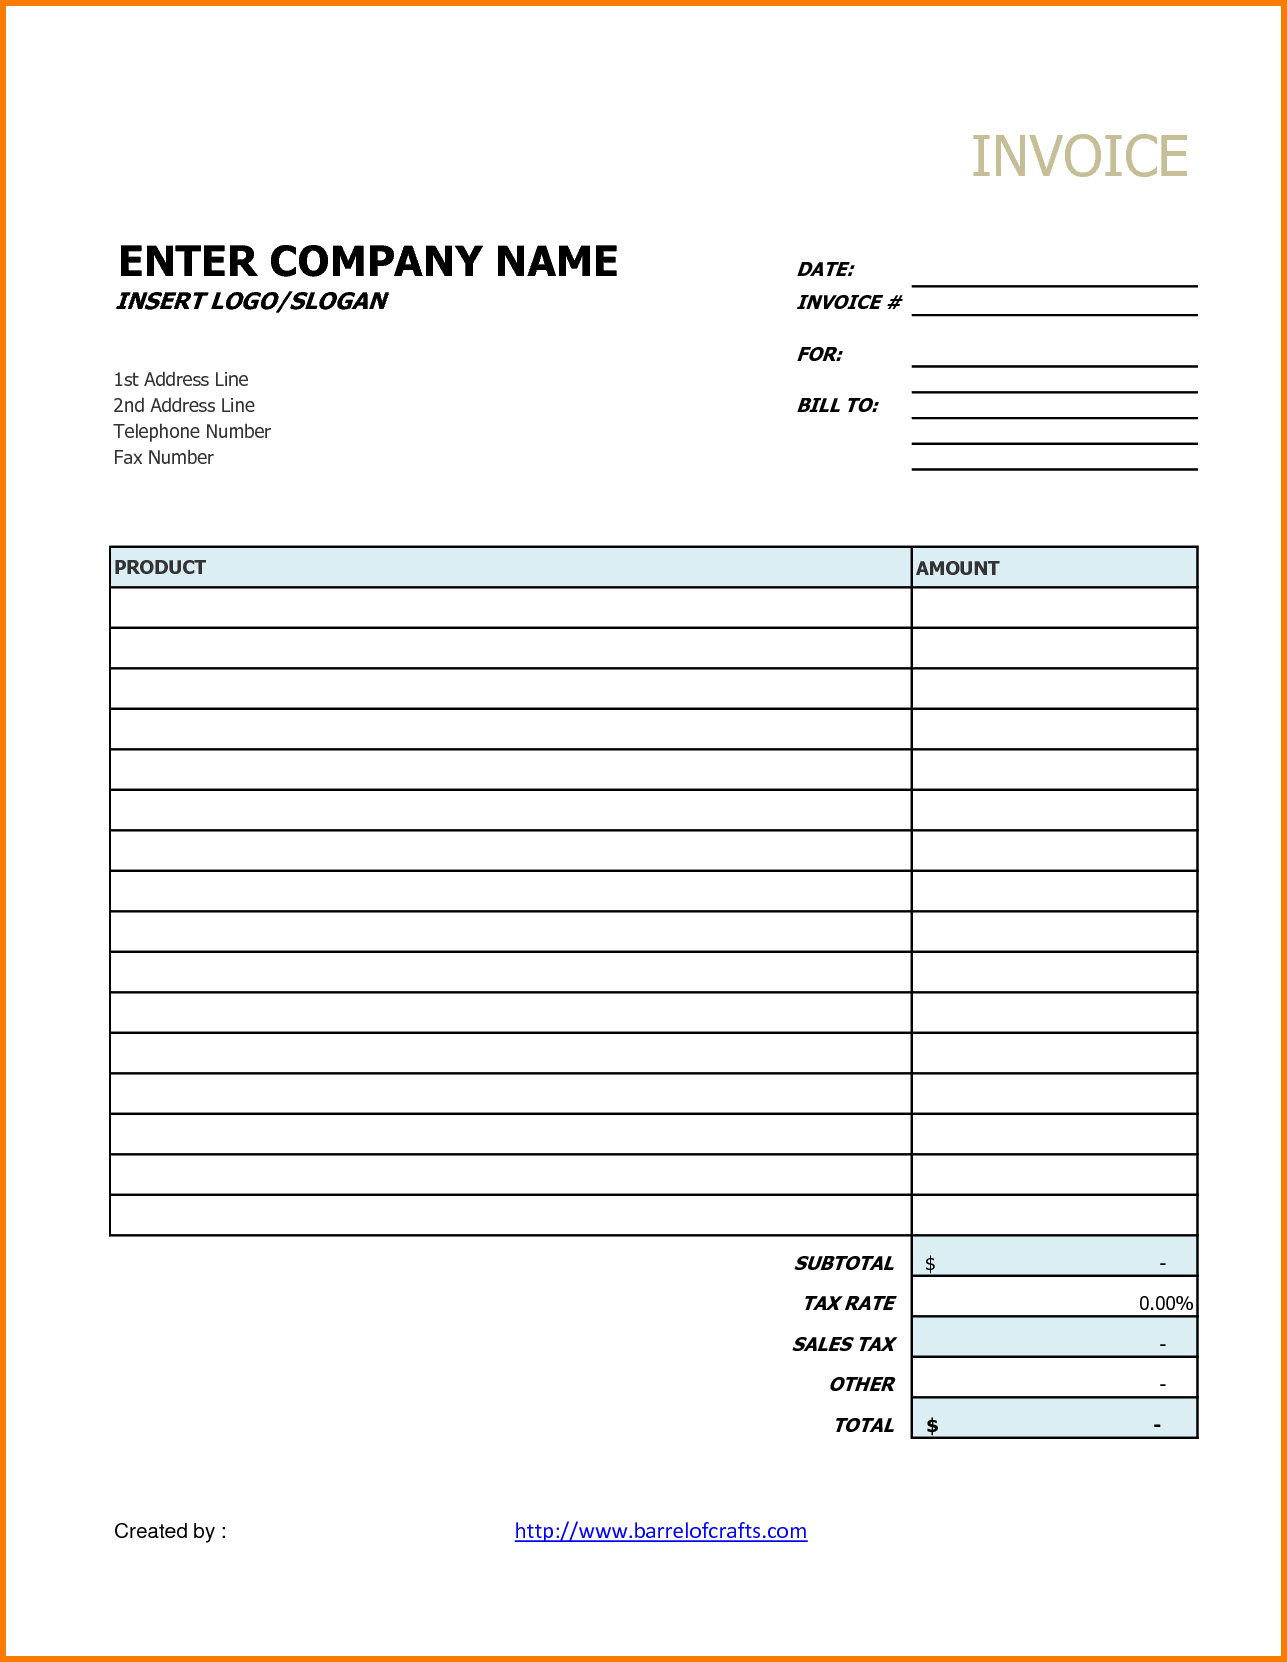 Sample Invoice for Accounting Services and Printable Invoice Template Your sourche for Printable Invoice